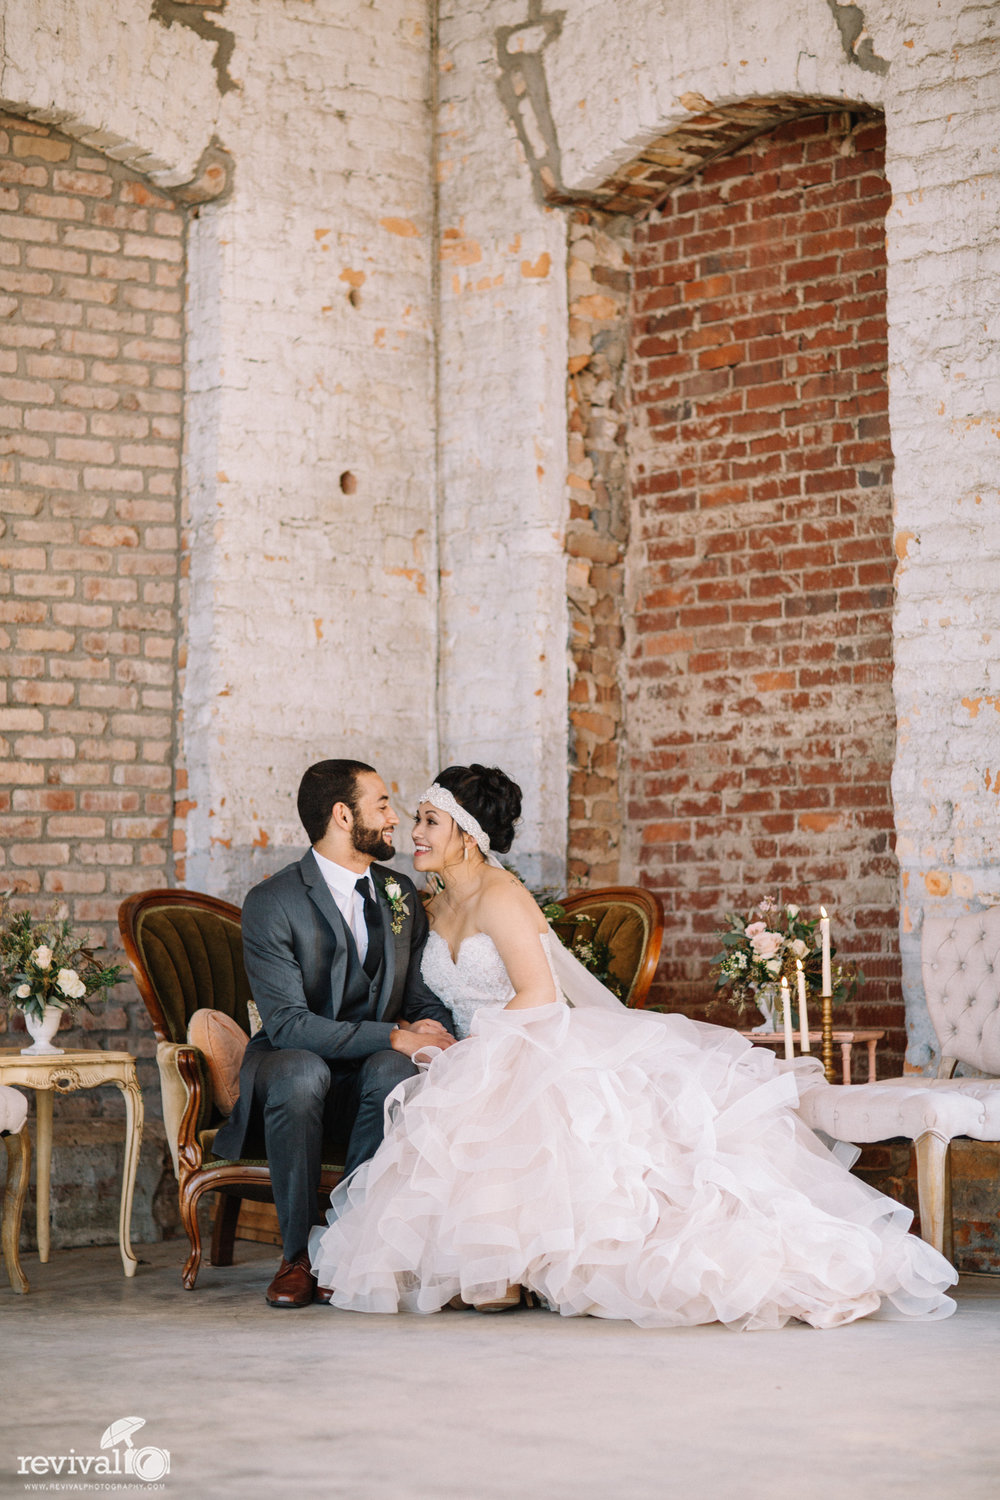 Southern Cotton Mill Romantic Industrial Shoot - A Twist on the Classic Southern Wedding Styled Shoot at Providence Cotton Mill, Maiden, North Carolina Photography by Revival Photography NC Wedding Photographers www.revivalphotography.com